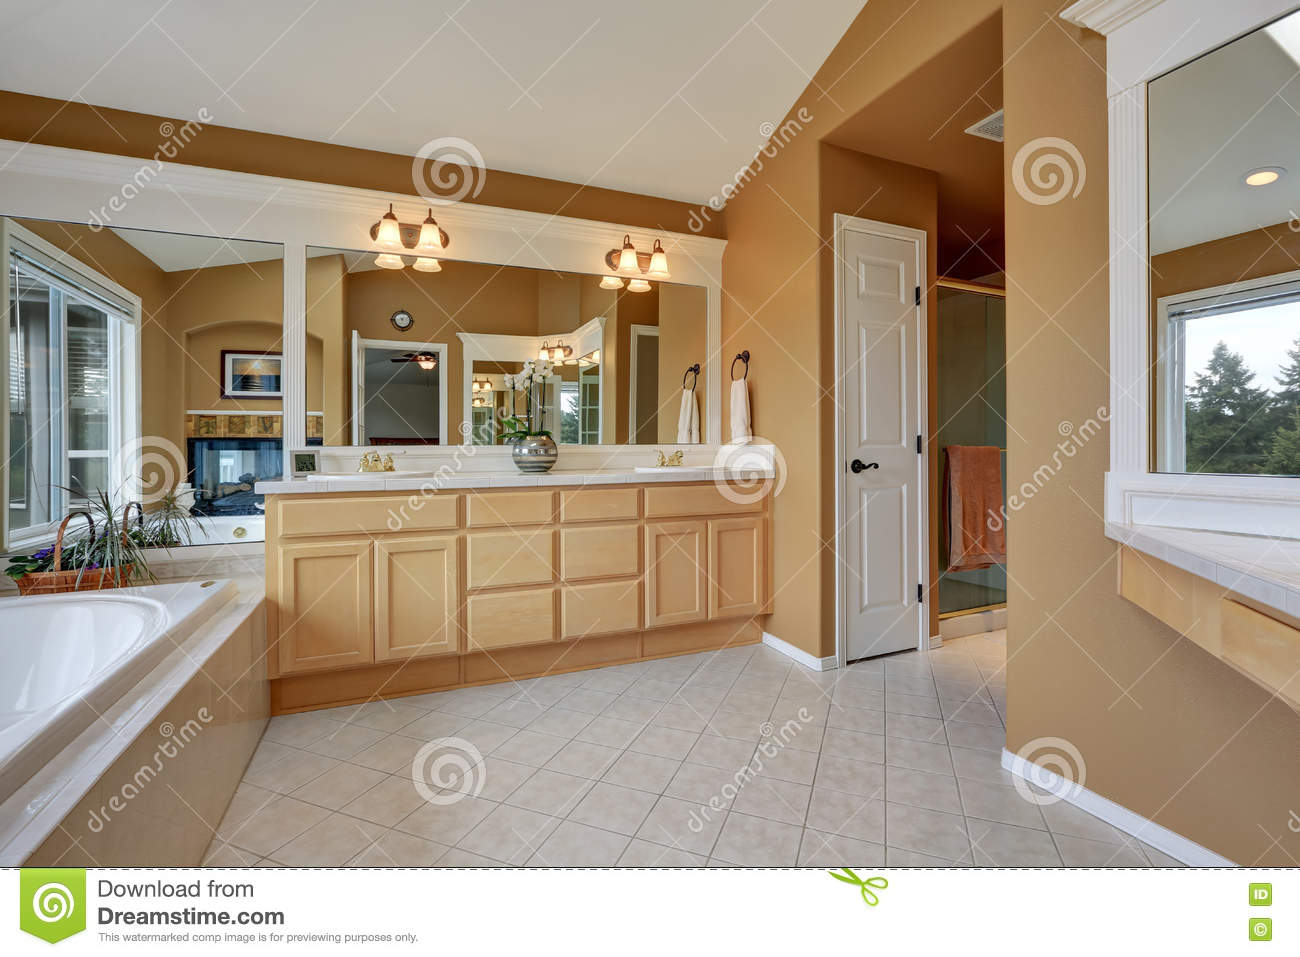 Luxury Bathroom Interior Orange Brown Walls And Vaulted Ceiling Stock Photo Image Of Interior Project 80687498